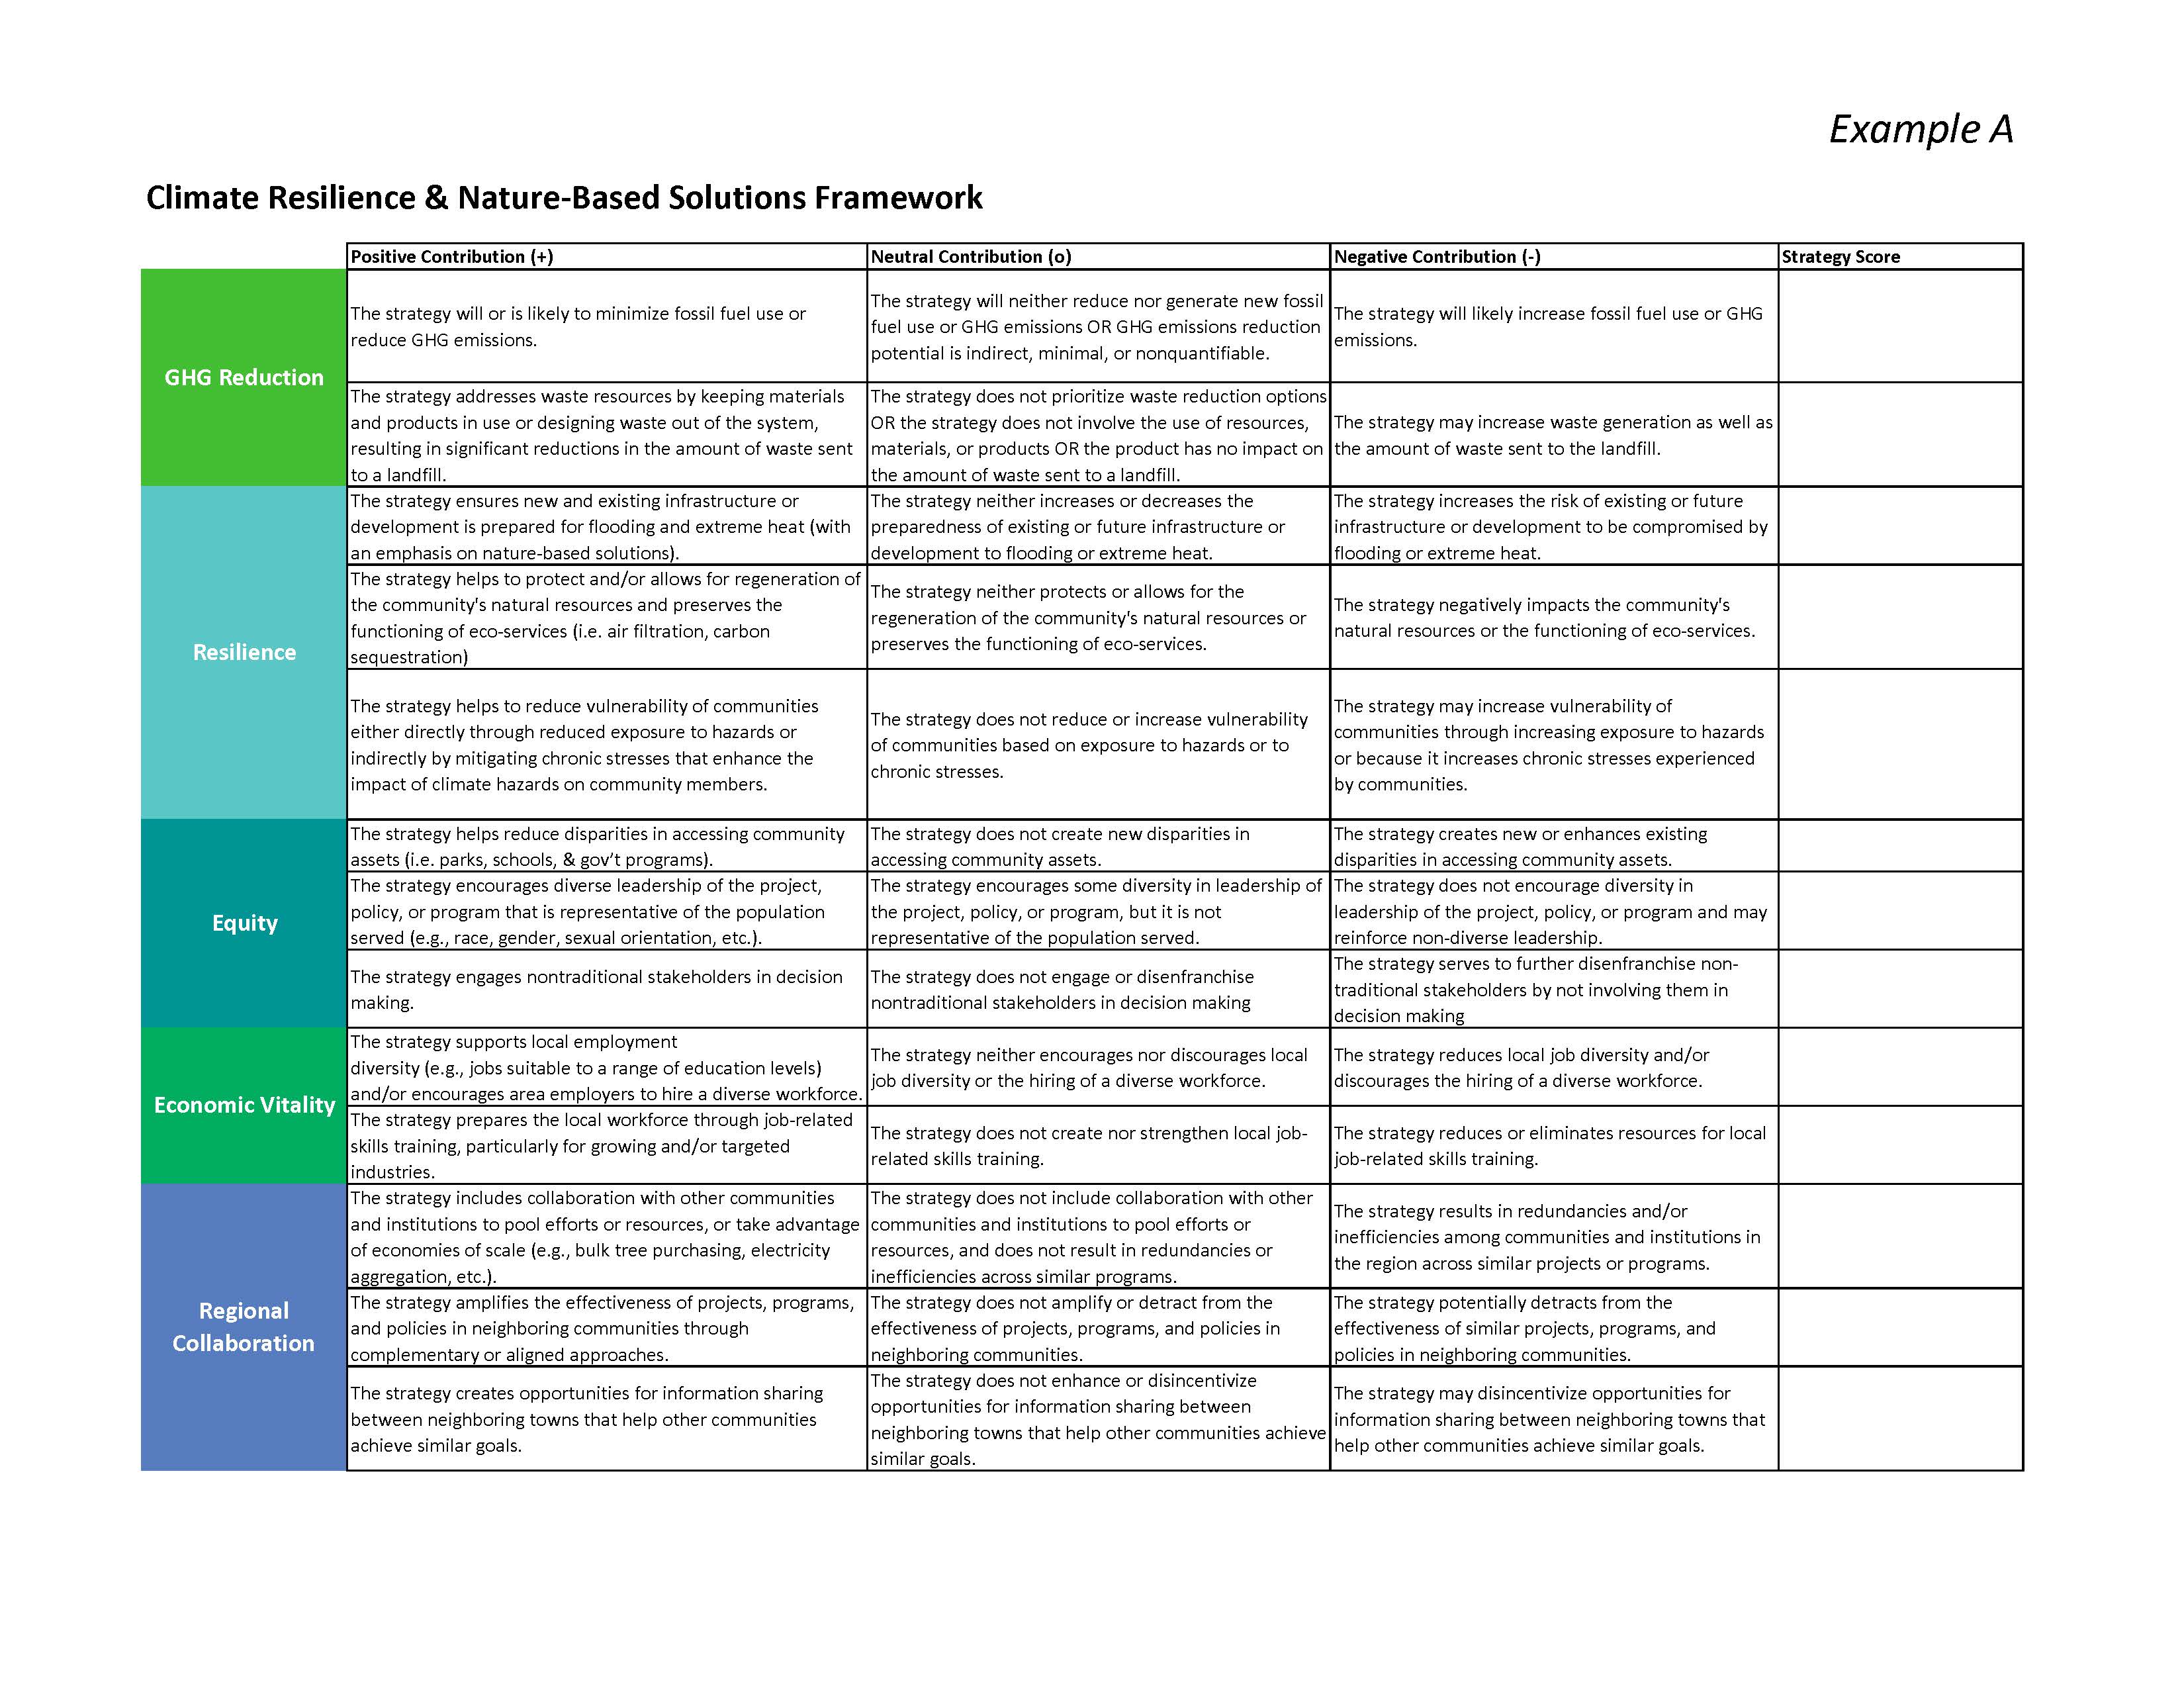 Example A Evaluation Framework - simple